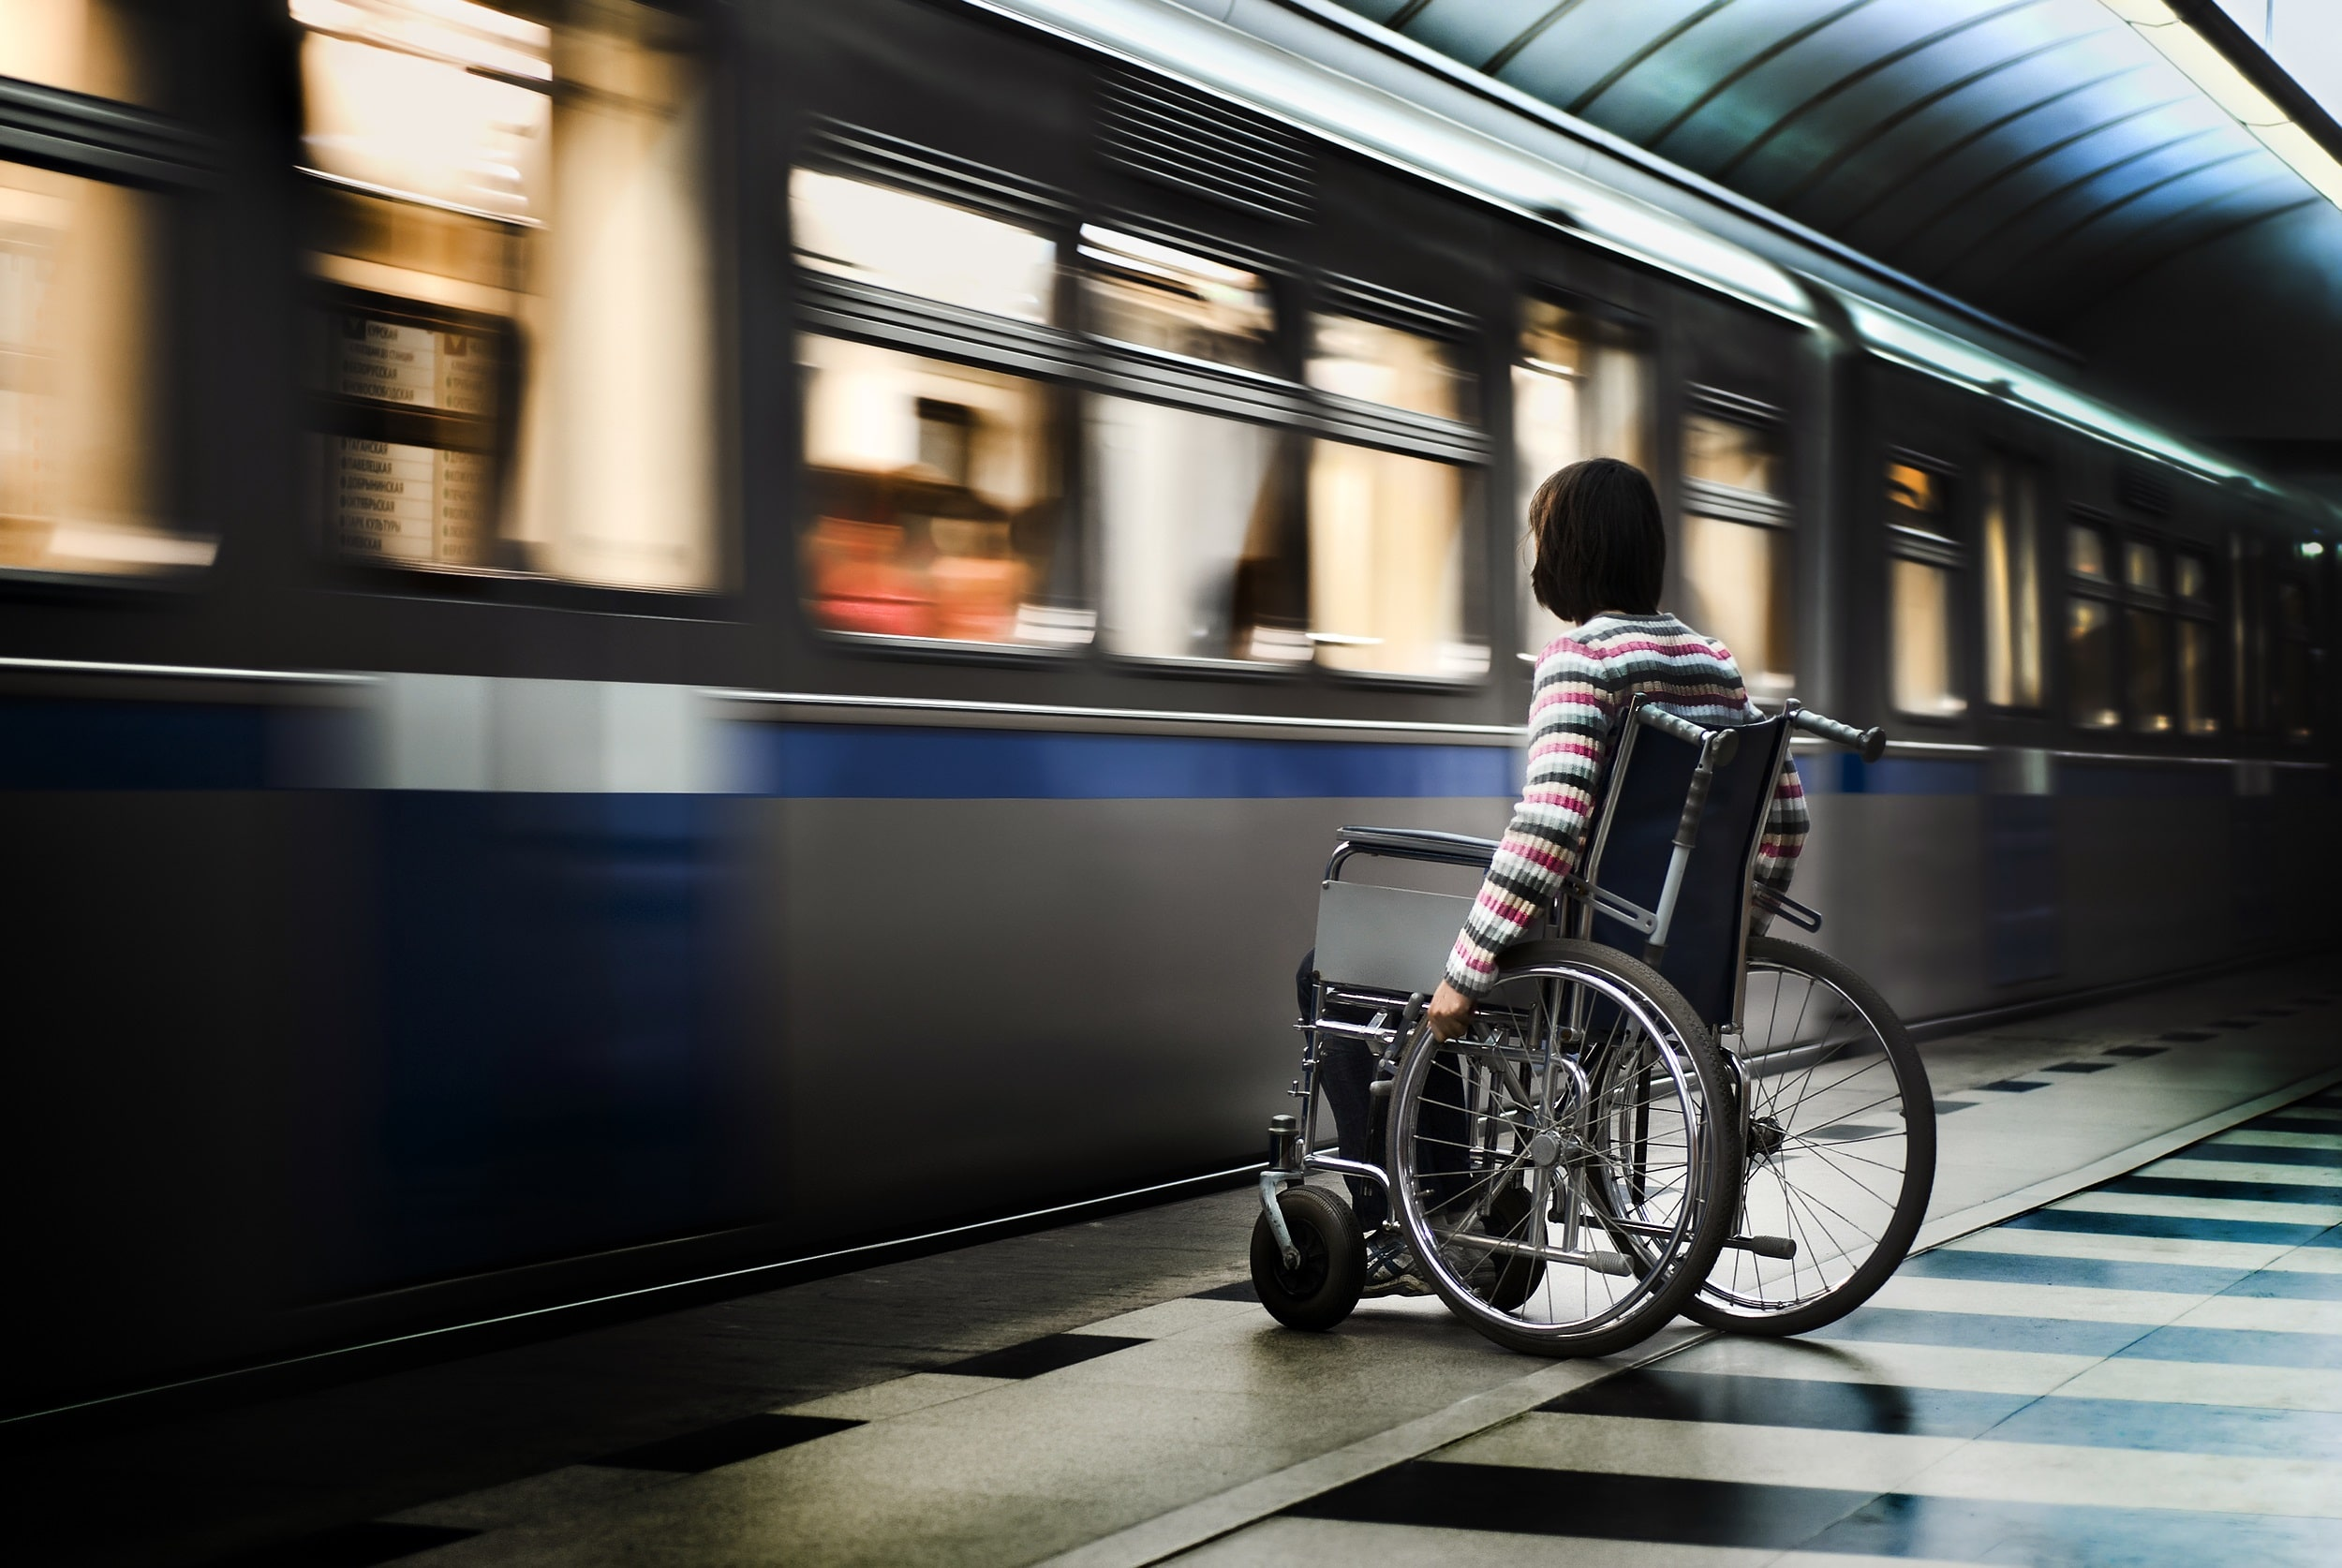 Woman in Wheelchair Waiting for Subway